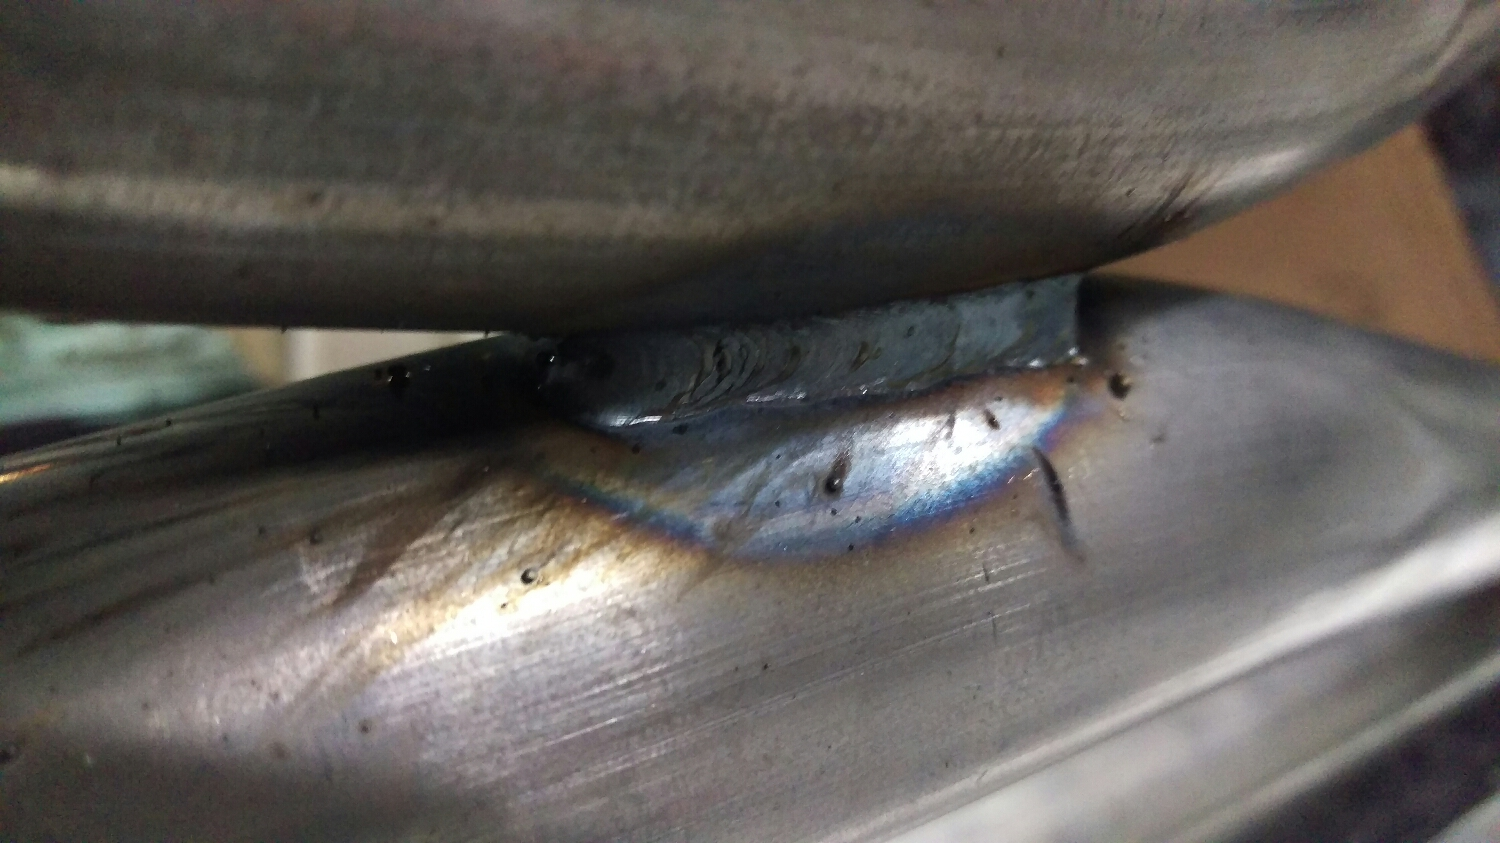 Mig welding isn't as clean and classy as Tig, but works well, especially for rollcages. and it saves lots of time. Red Mist prefers Tig, but it gets pricey due to labor. Proper penetration and heat are Important. Don't make a cage your first welding project.